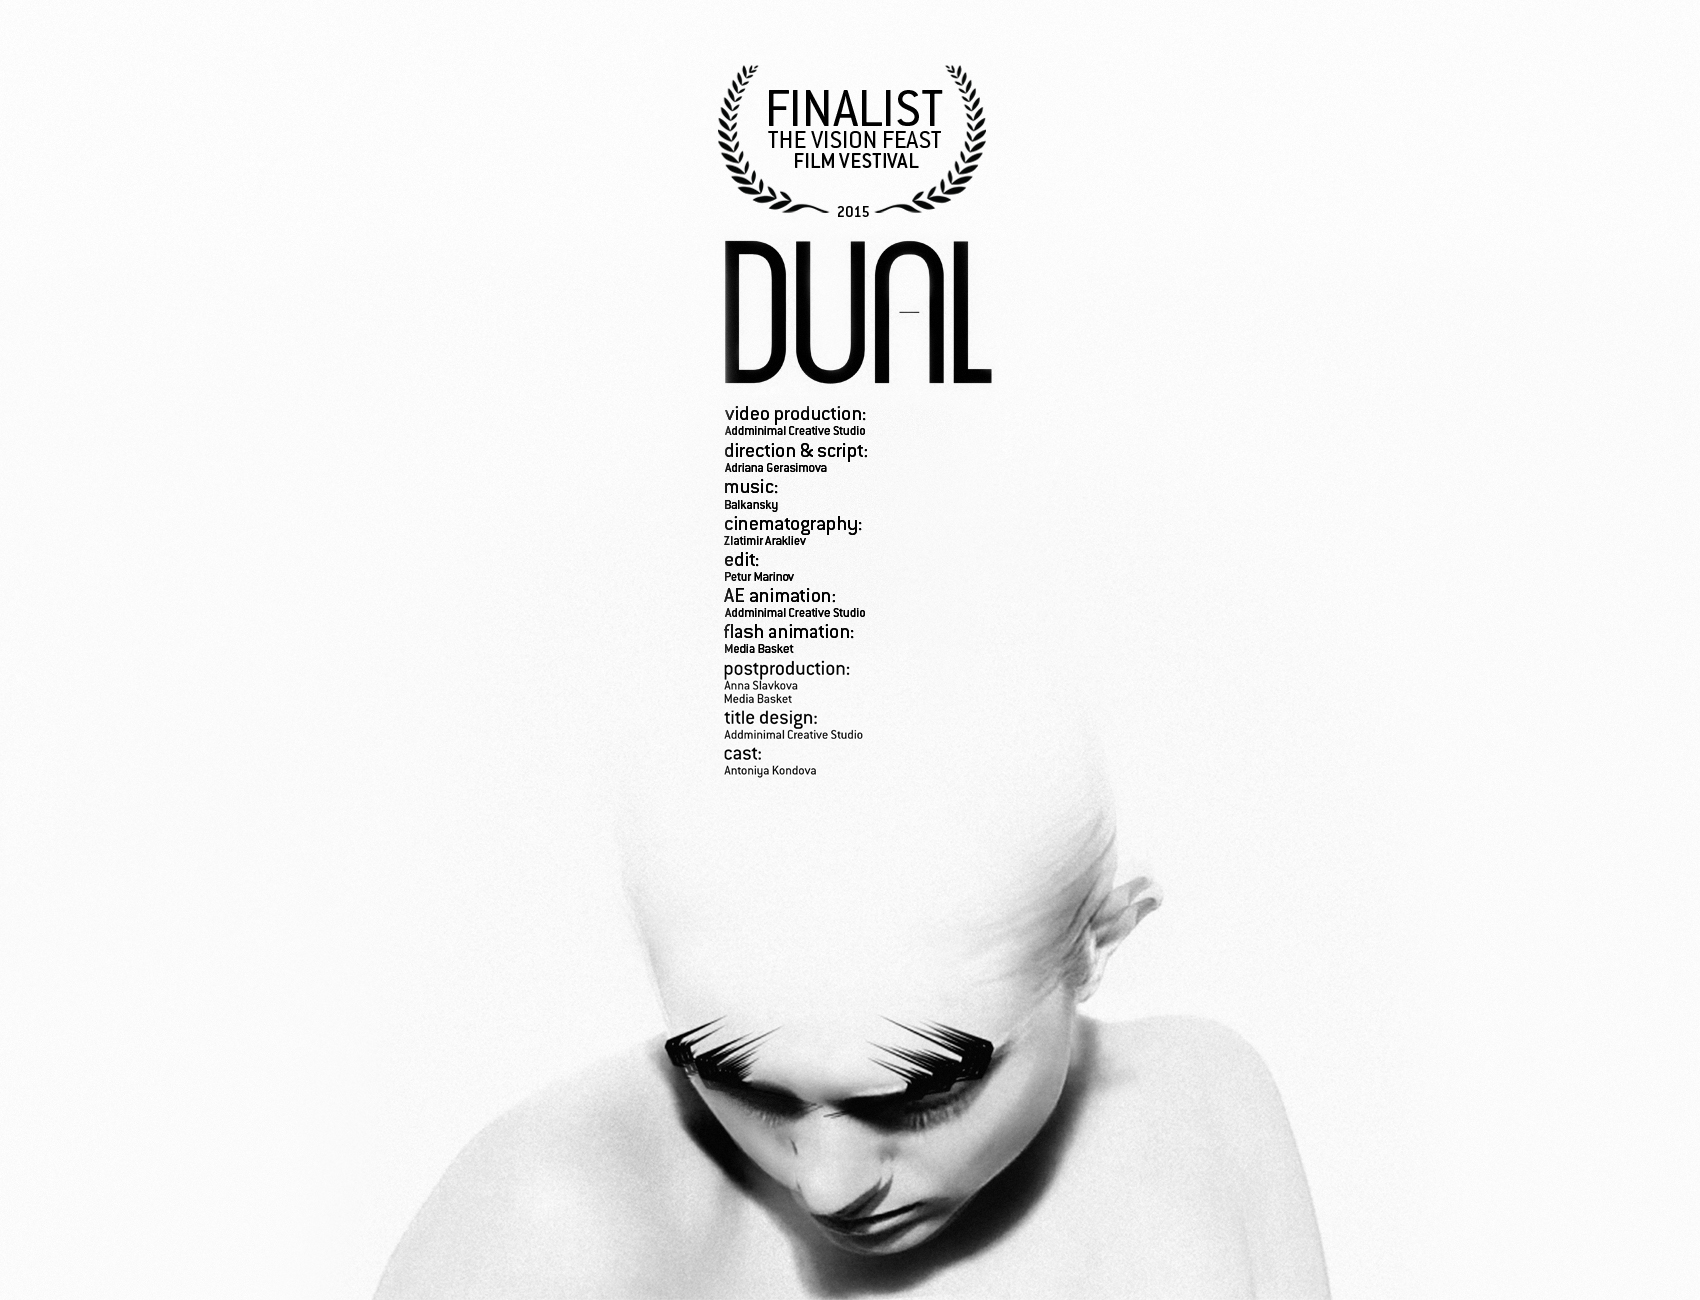 DUALITY_Teaser / By ADDMINIMAL Cr. Studio / May 2012